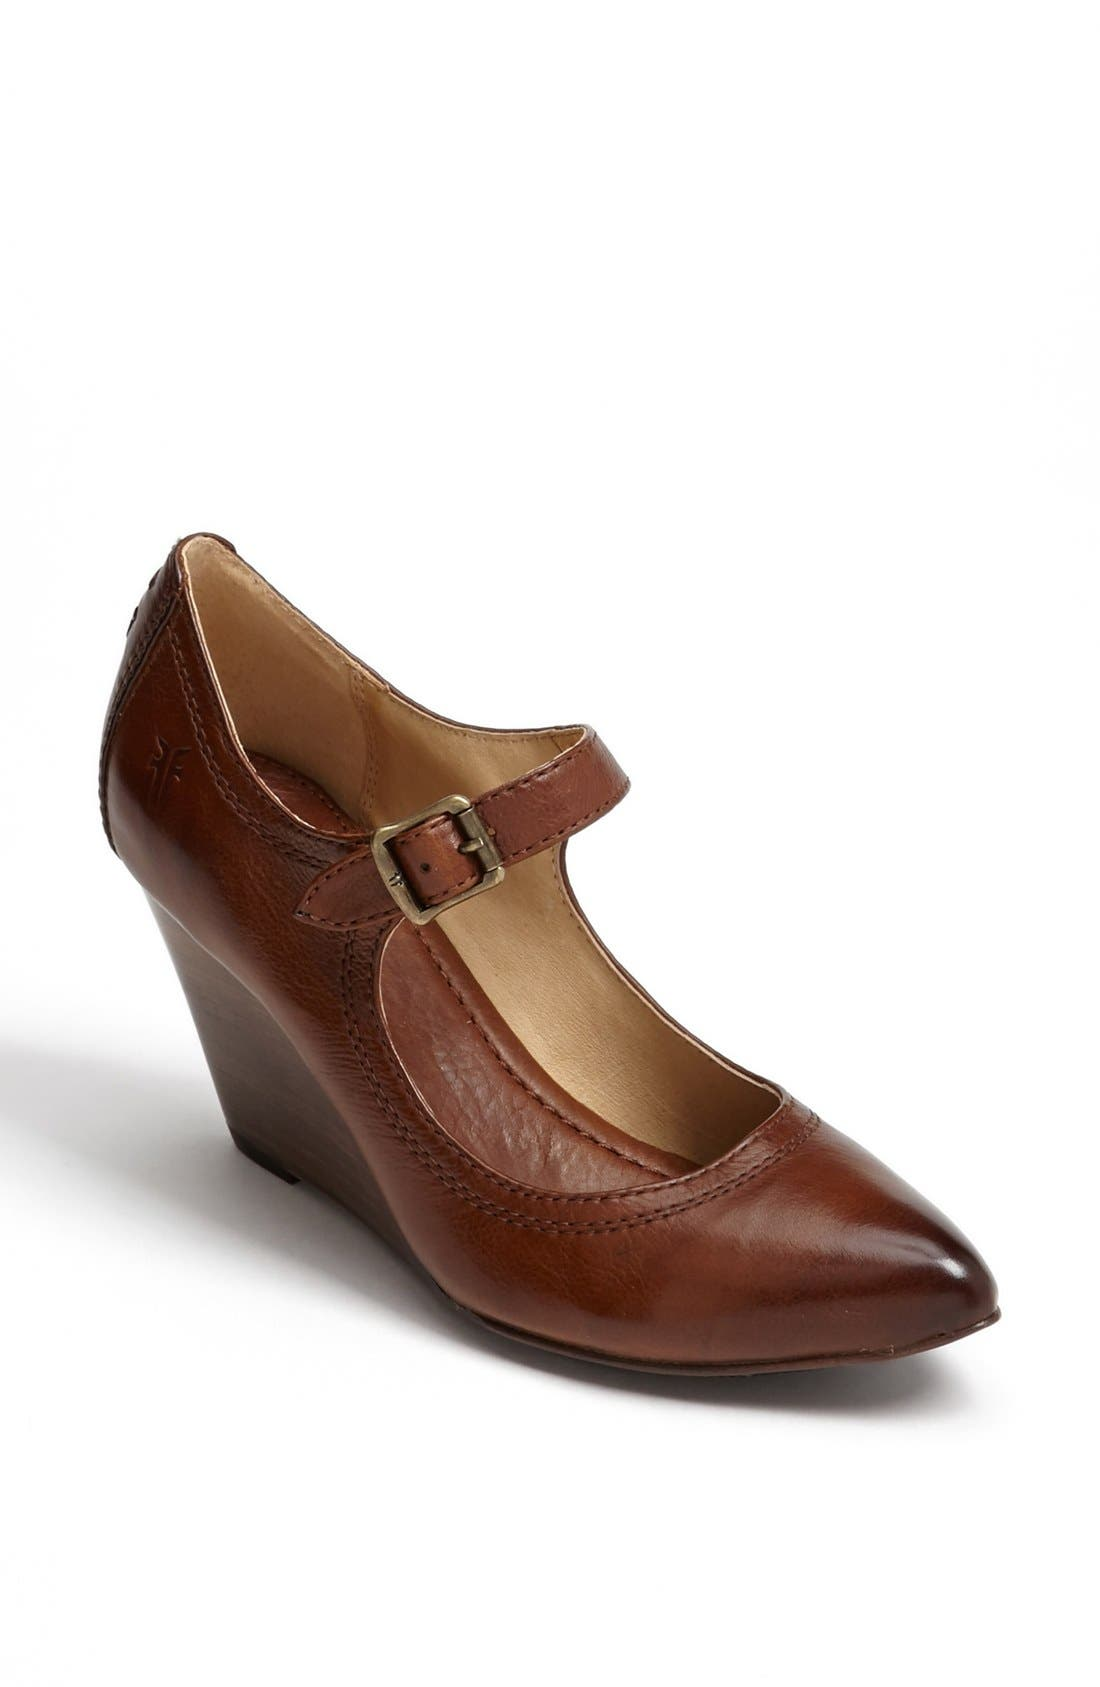 Main Image - Frye 'Regina' Wedge Pump